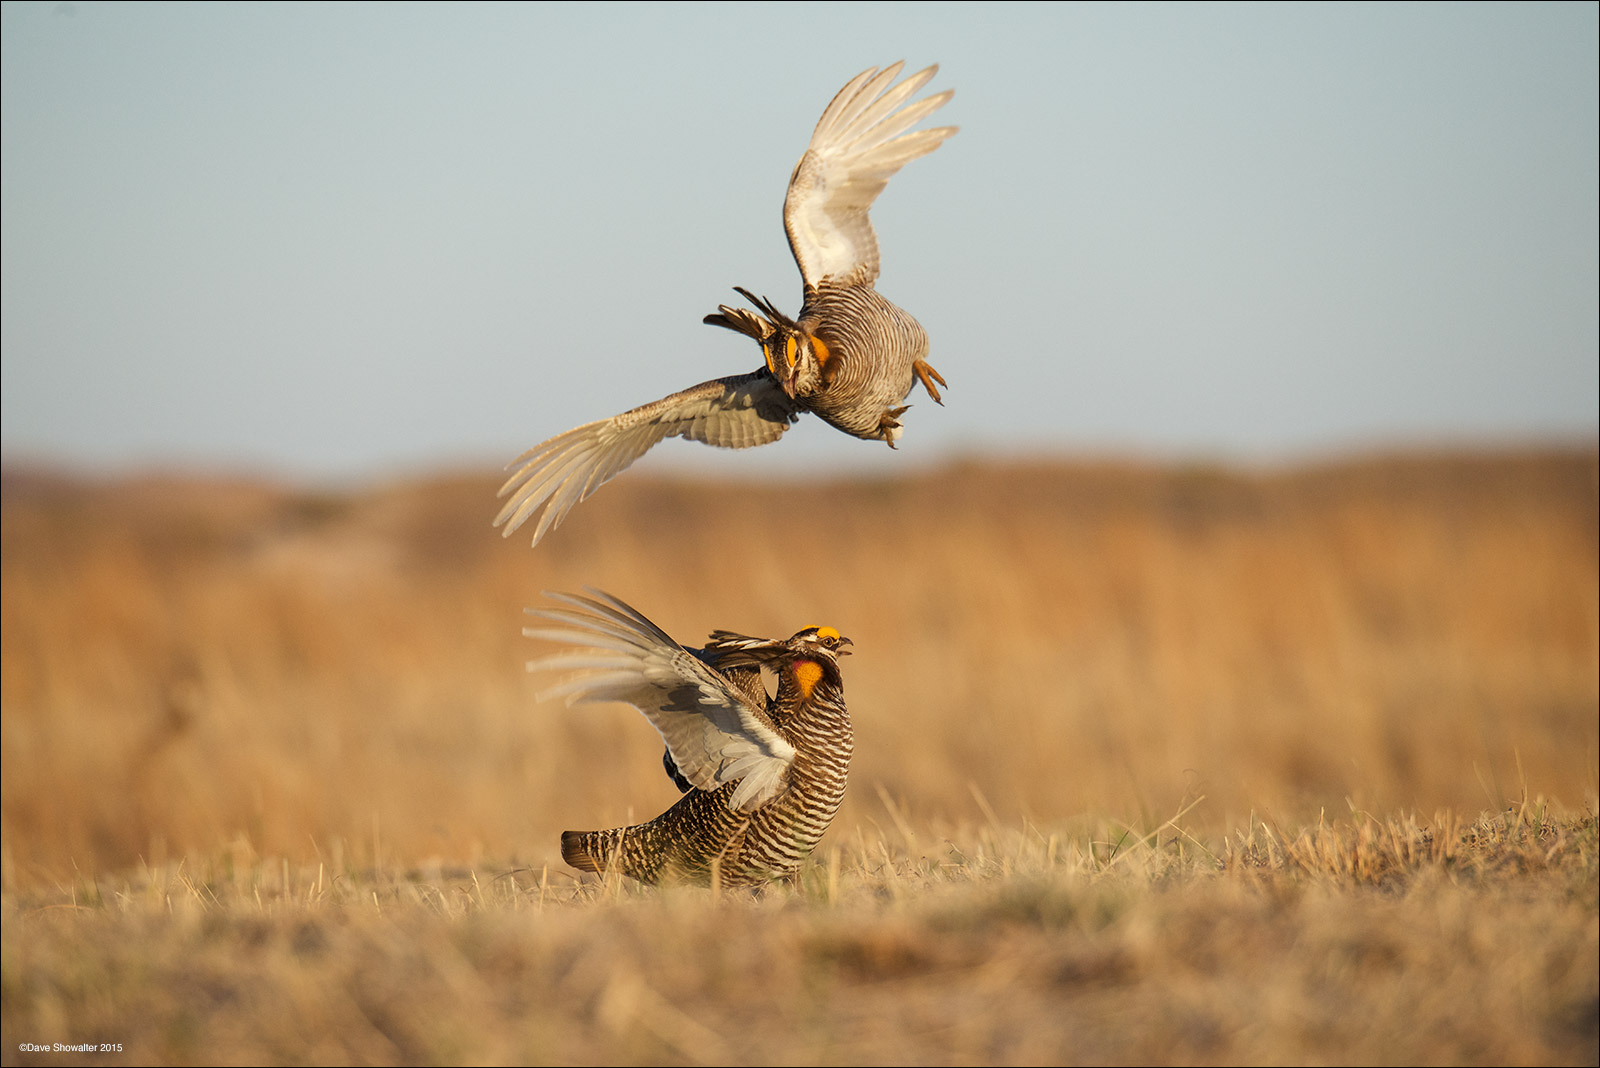 greater prairie chicken, Nebraska Sandhills, photo